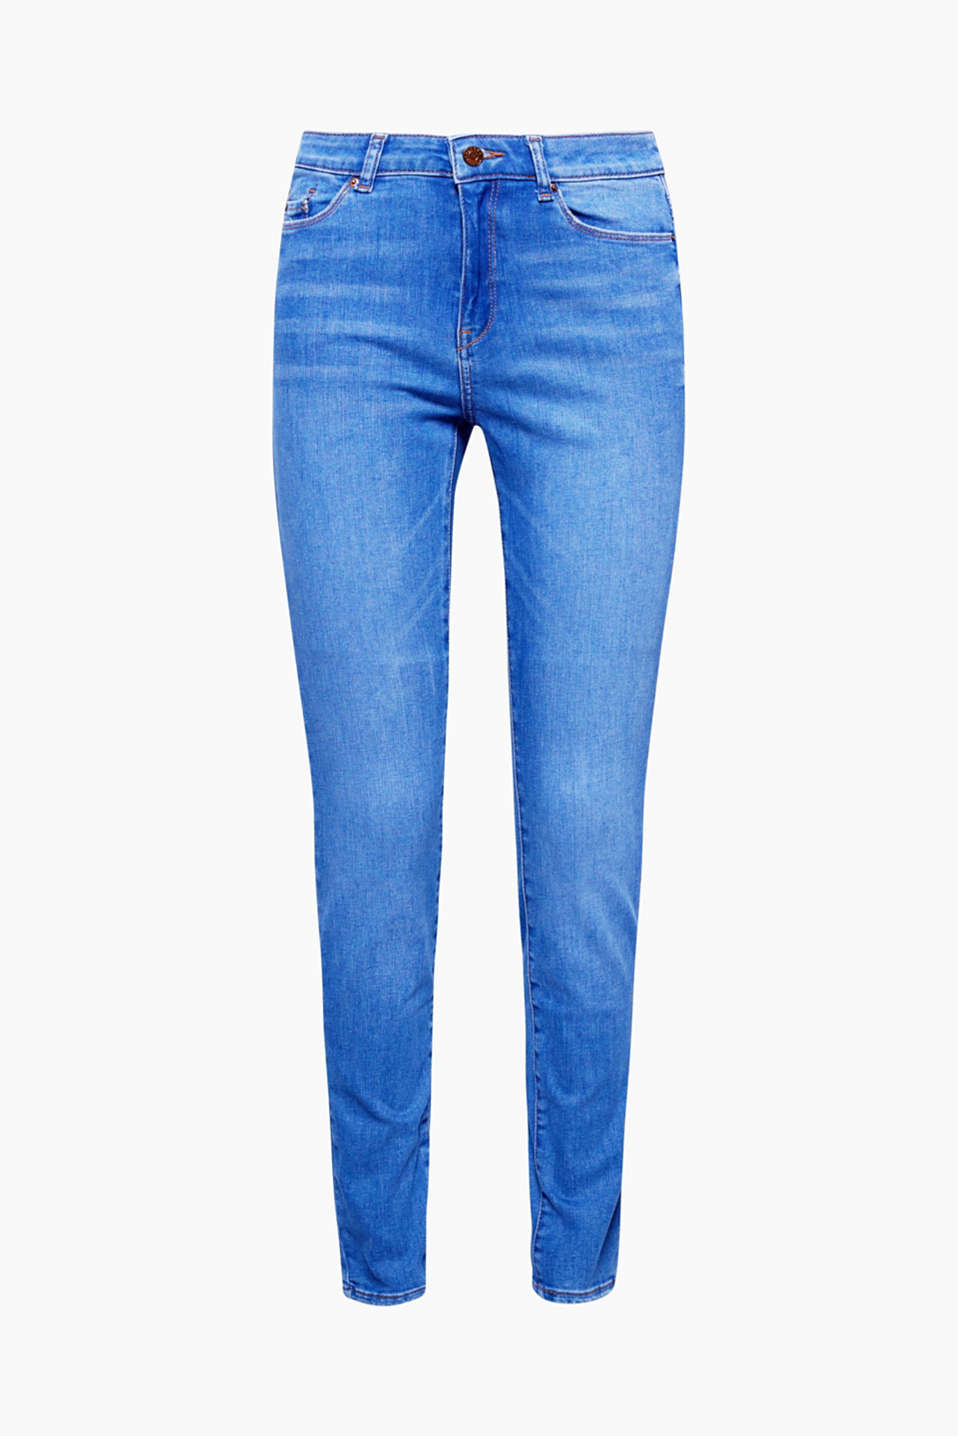 The high-waist cut, super stretch fabric and luminous wash of these jeans will accentuate your silhouette!